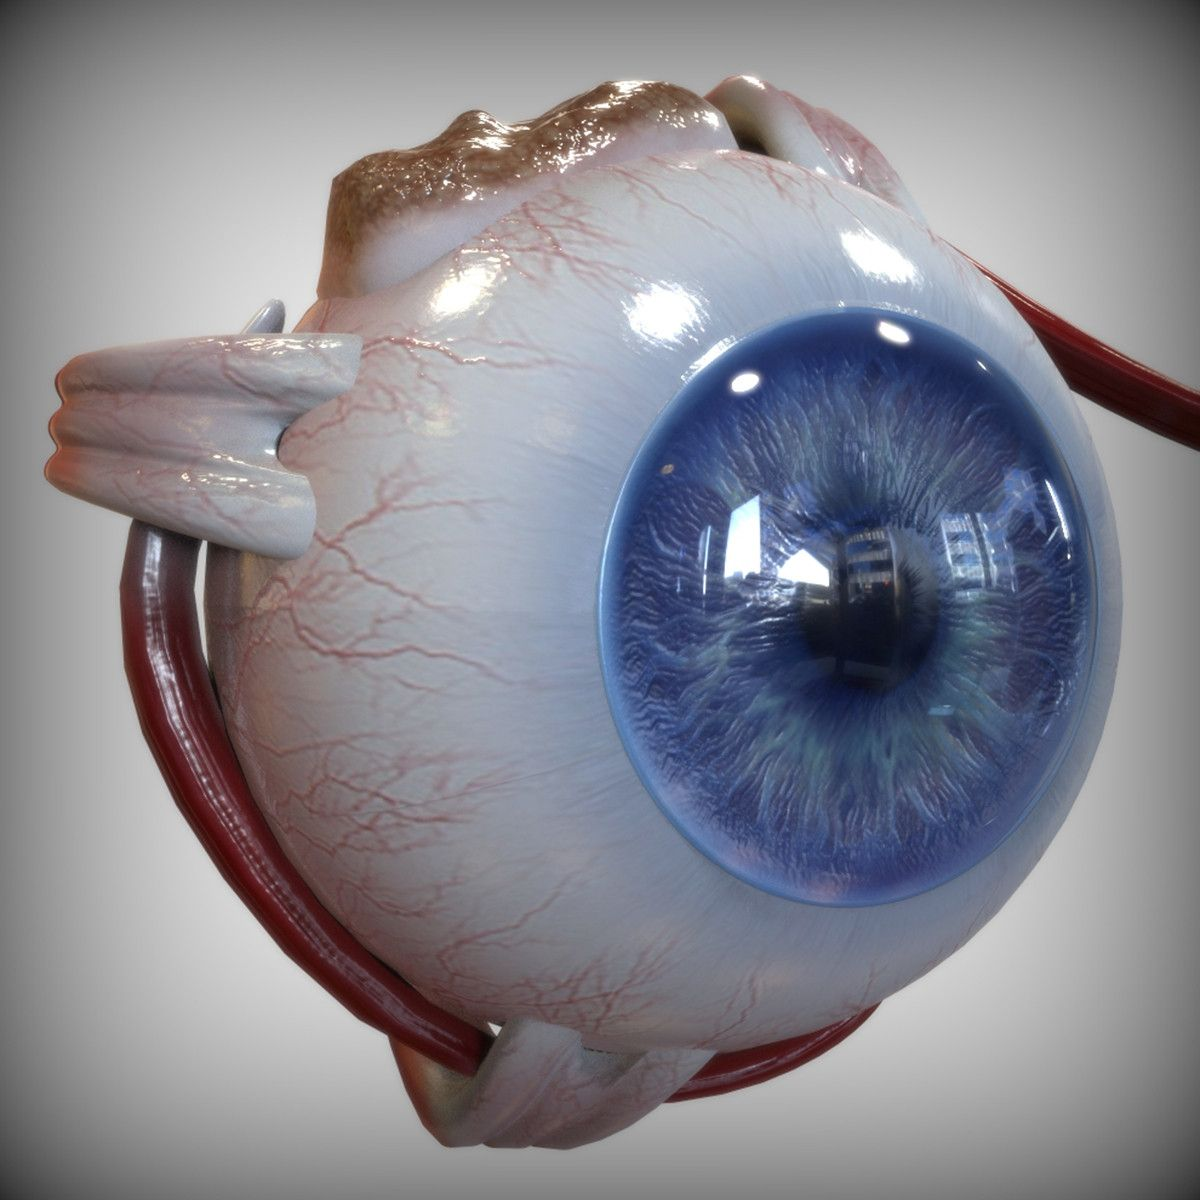 eye anatomy 3d model | 3d Anatomy | Pinterest | Eye anatomy, Anatomy ...